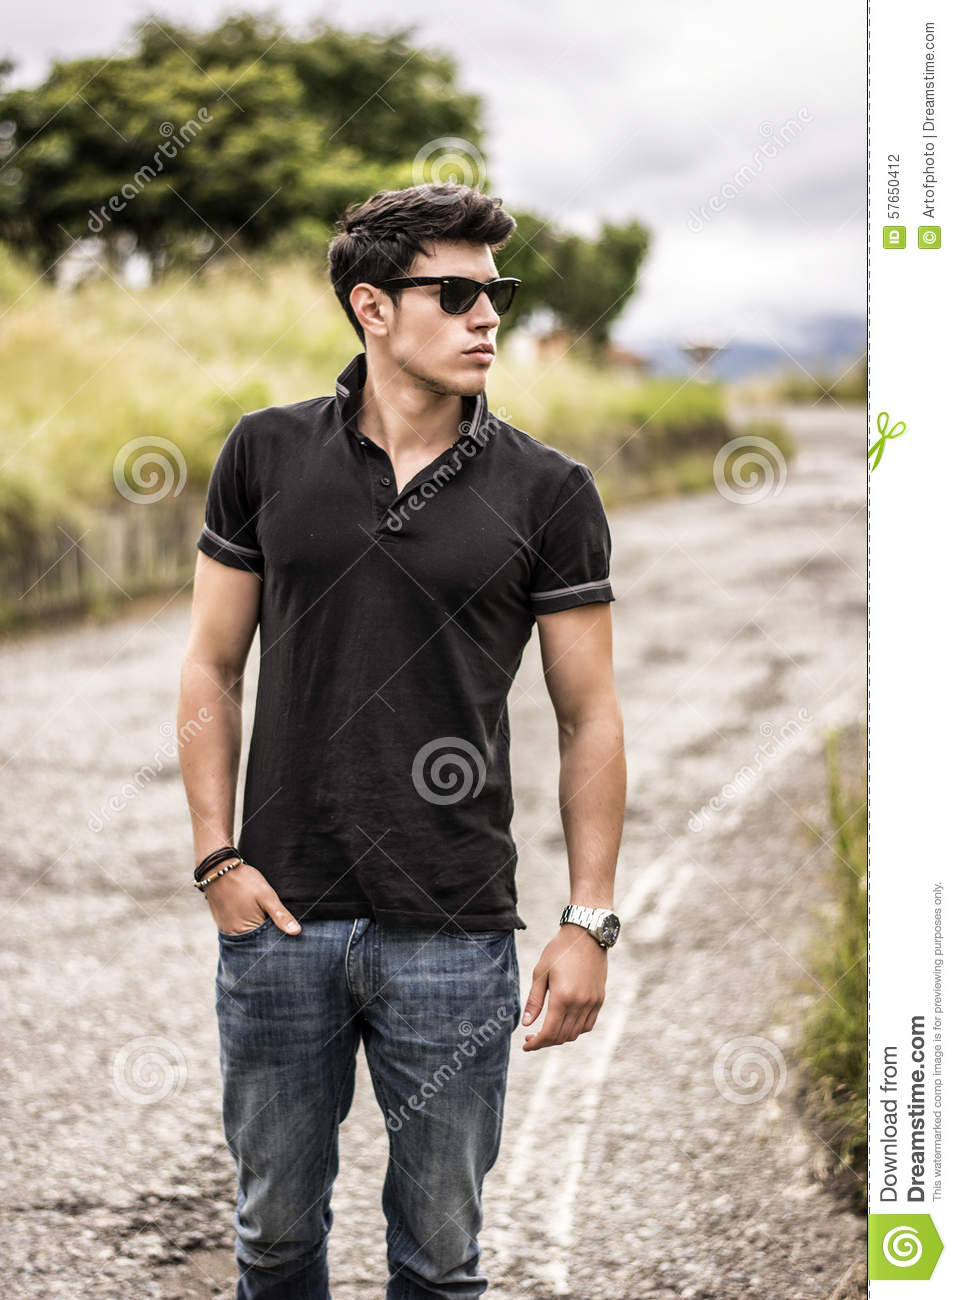 Black t shirt and jeans - Young Man In Jeans And Black T Shirt Walking Along Stock Photo